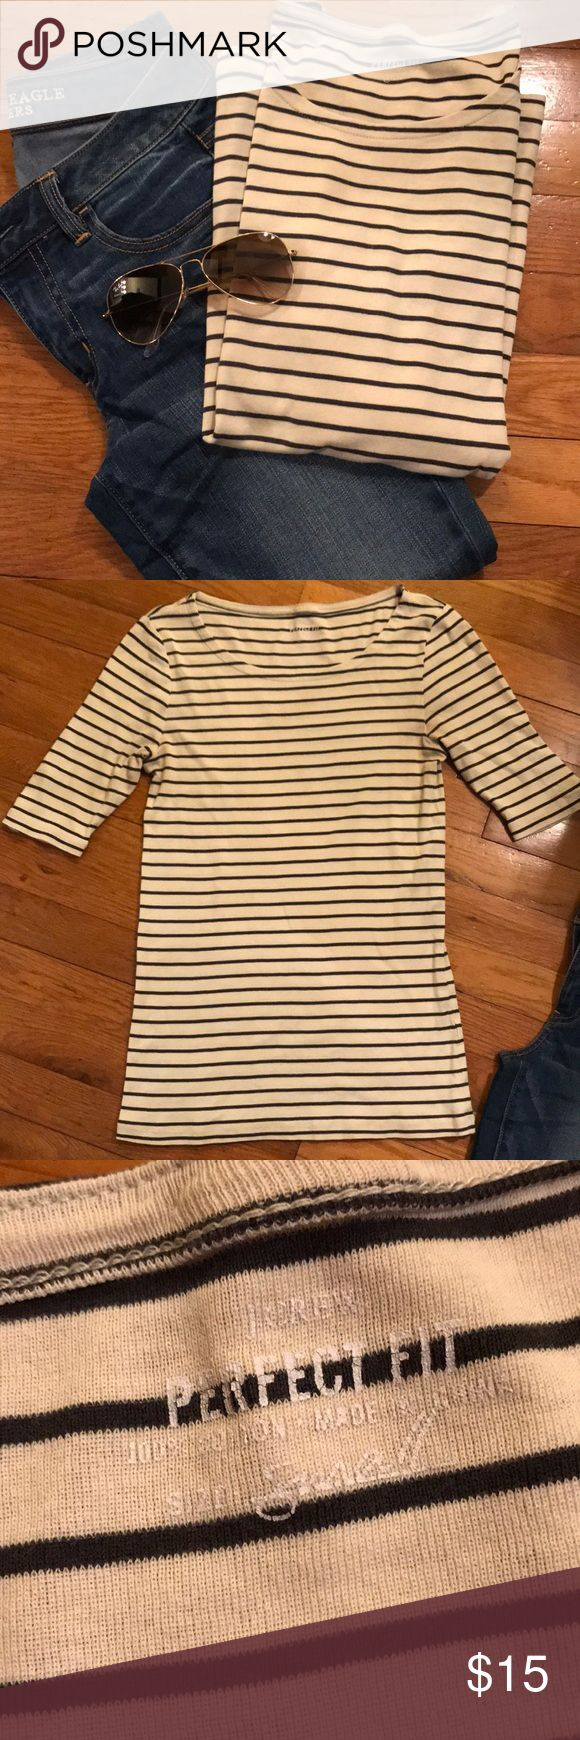 J. Crew Perfect Fit striped tee Women's J. Crew 'Perfect Fit' striped tee, size small. Gently used, missing one snap from elbow (see photos). Otherwise a great, classic shirt! Color is like an off white with dark grey stripes. Has boat neck with 3/4 style sleeves. 💯 percent cotton. Soft and comfy!  Perfect with jeans and camel accessories!! Smoke free home. Make offer! J. Crew Tops Tees - Long Sleeve